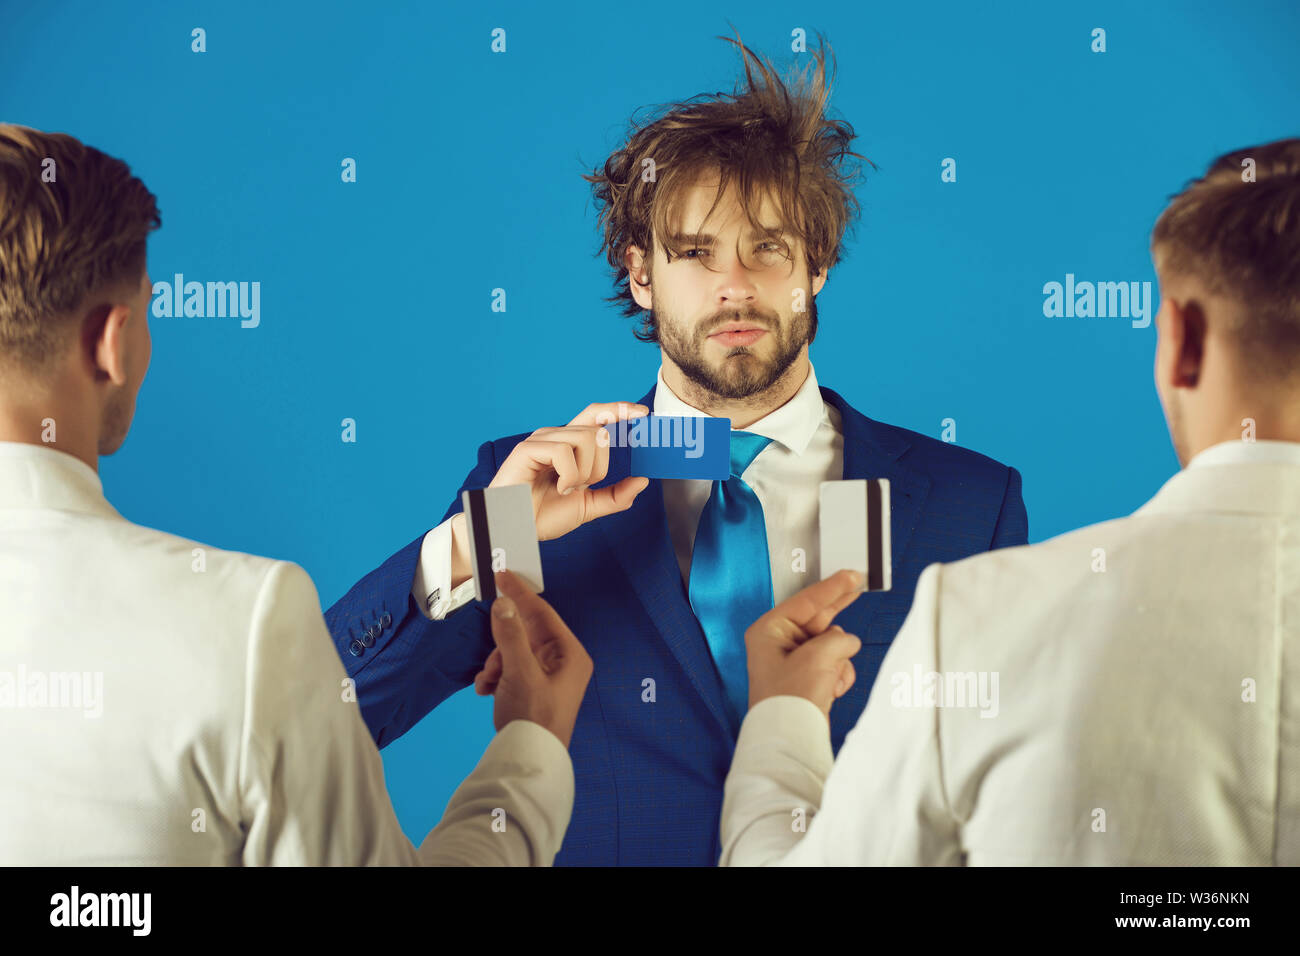 Men wearing white jackets, back view. Information and cooperation. Business ethics concept. Businessmen exchanging cards on blue background. Group of - Stock Image